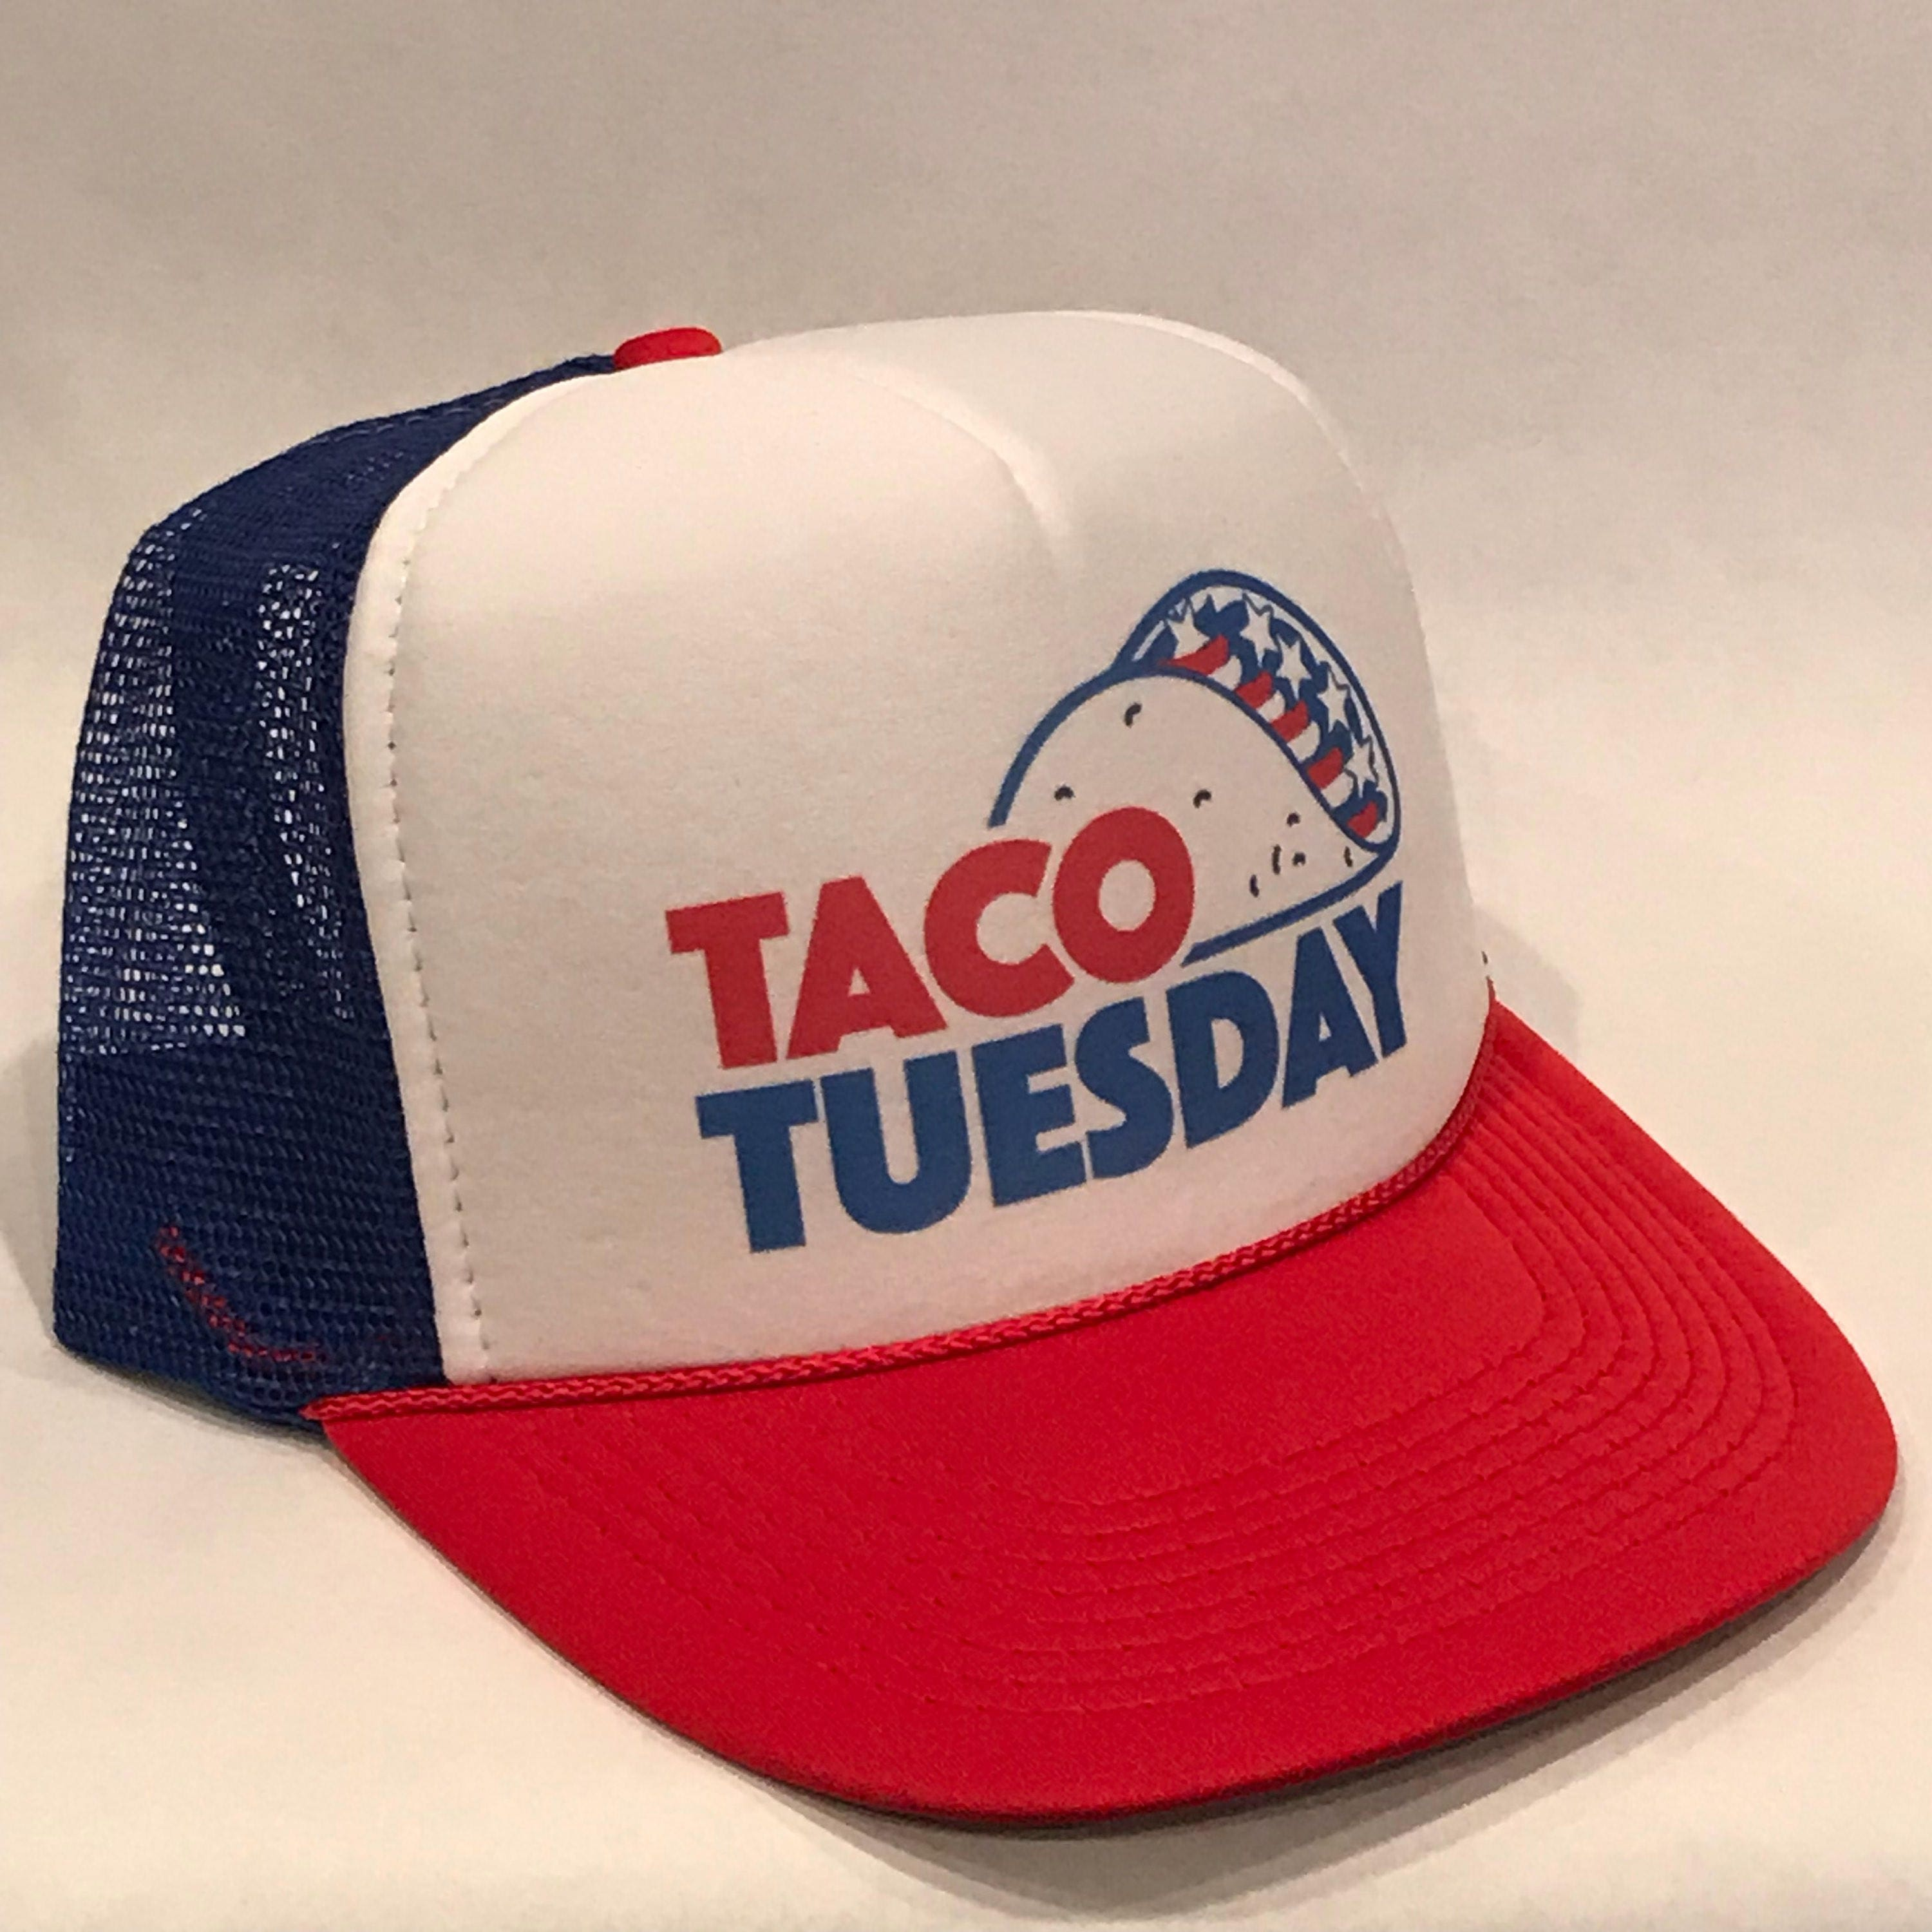 d70dc174f Taco Tuesday Trucker Hat Merica Patriotic American Flag Red White & Blue  Bell